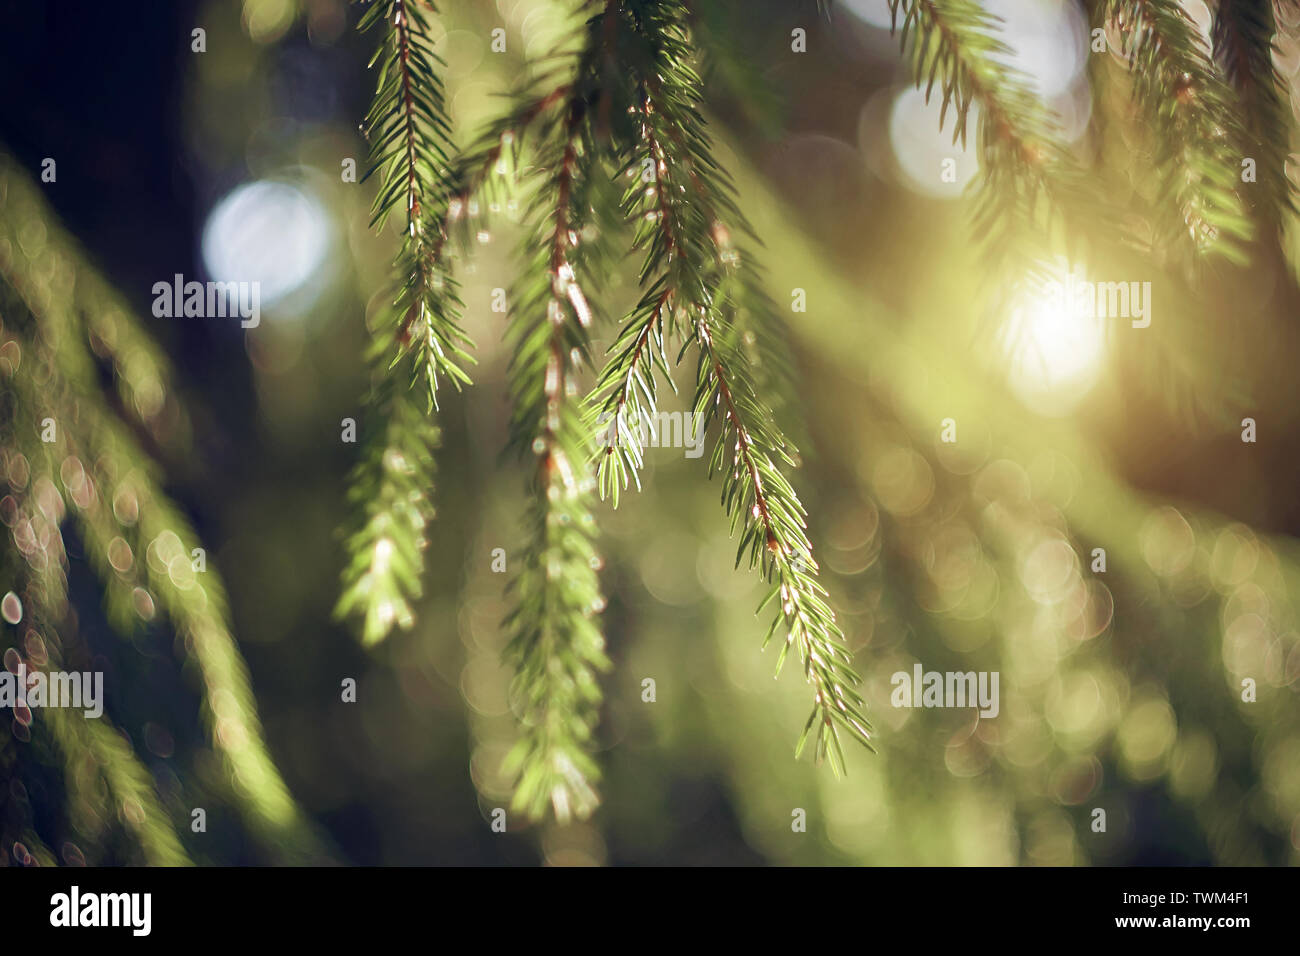 Green fresh fir branches with small needles hang down from the crown of the tree, illuminated by sunlight, breaking through the branches. - Stock Image